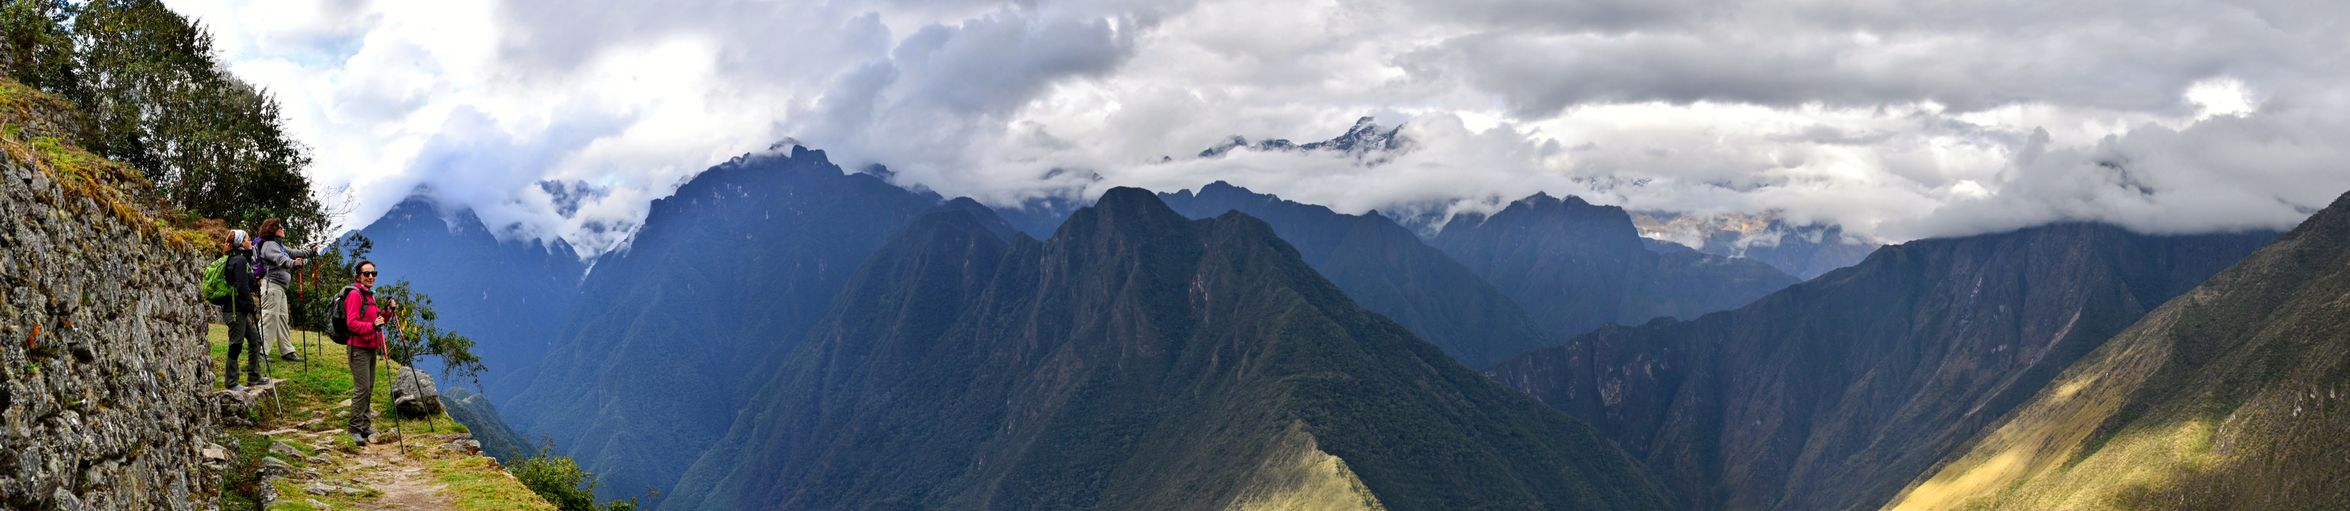 The view from Intipata. Inka Trail Nature Collection Landscape Photography NEM Landscapes Landscape_Collection EyeEm Best Shots - Nature TheWeekOnEyeEM Eye4photography  Ladyphotographerofthemonth EyeEm Nature Lover Nature_collection